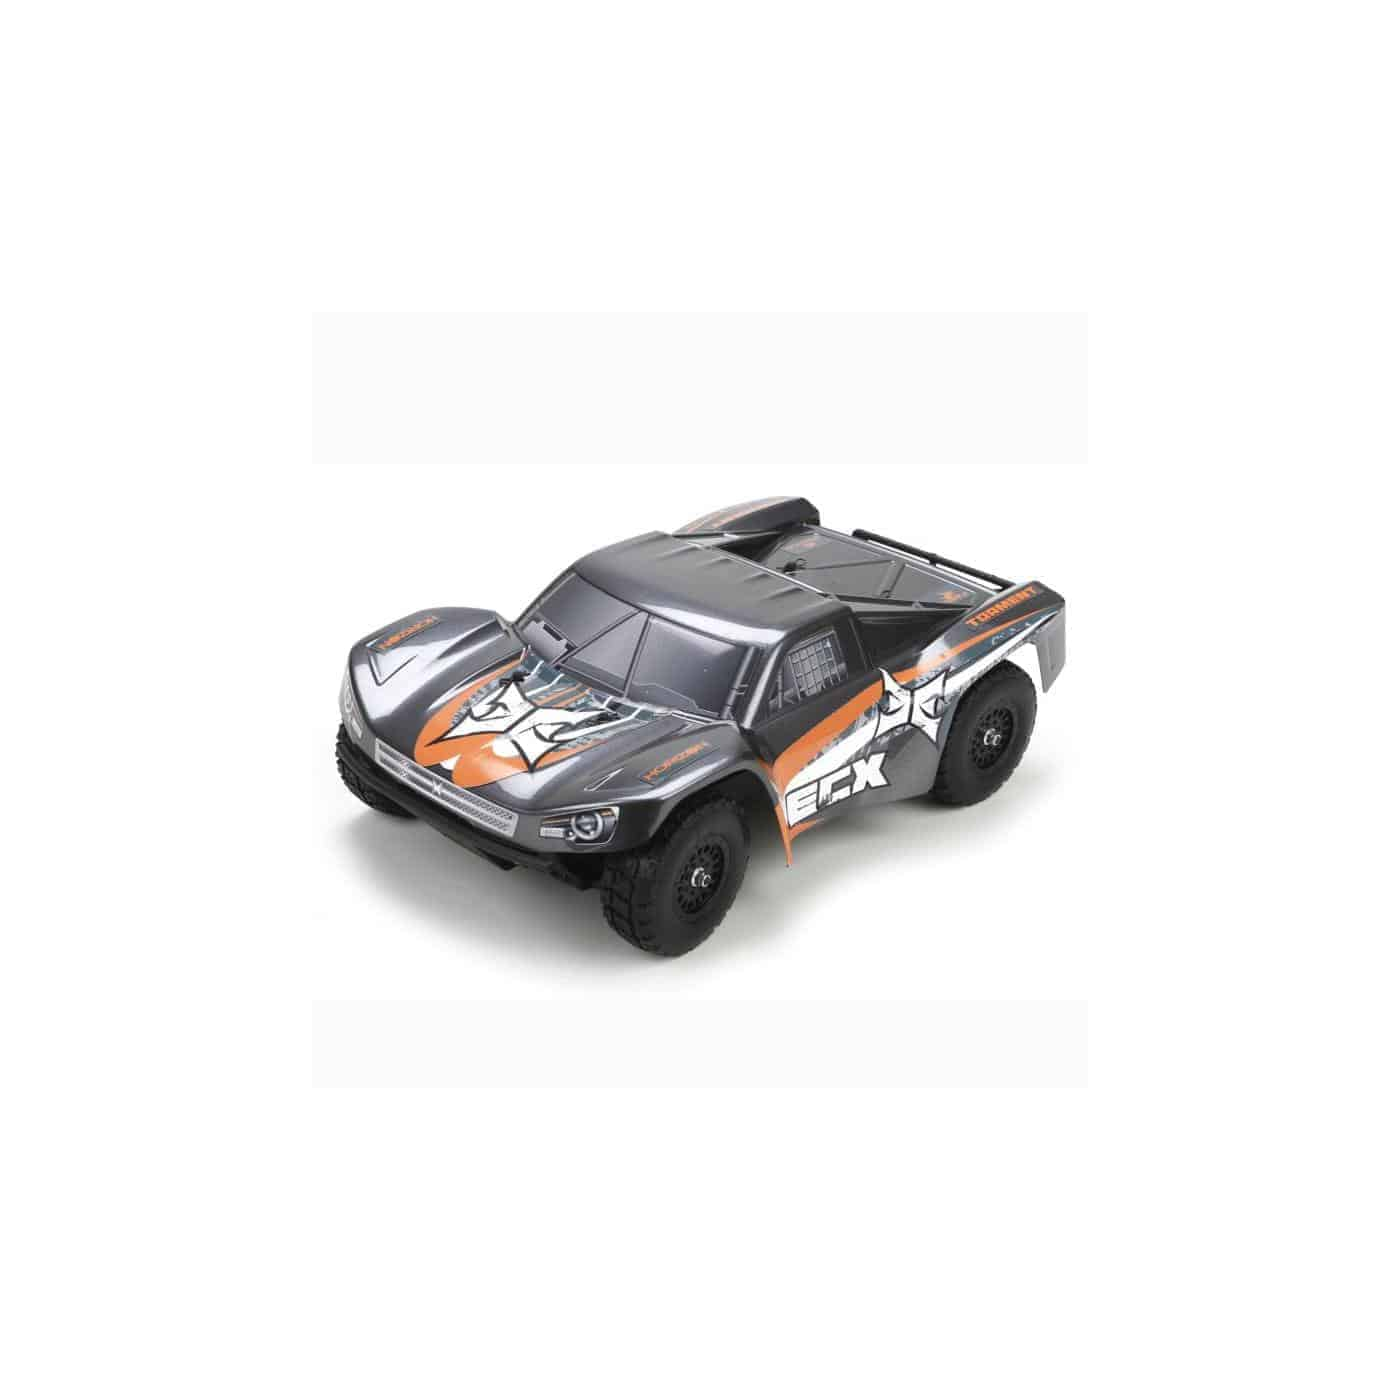 ECX 1/18 Torment 4WD Short Course Truck RTR, Gray/Orange